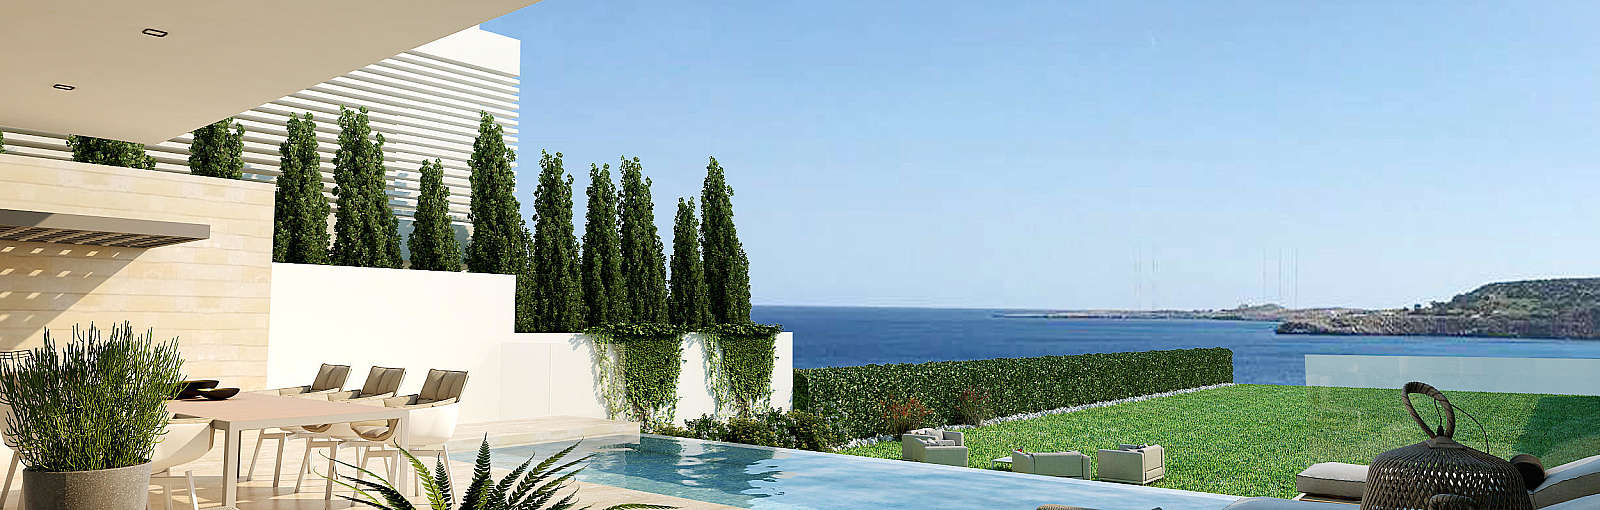 "<span class=""numbers"">3</span> Bed­room Detached Lux­u­ry Beach Front Villa/​Cape&nbsp;Greco"